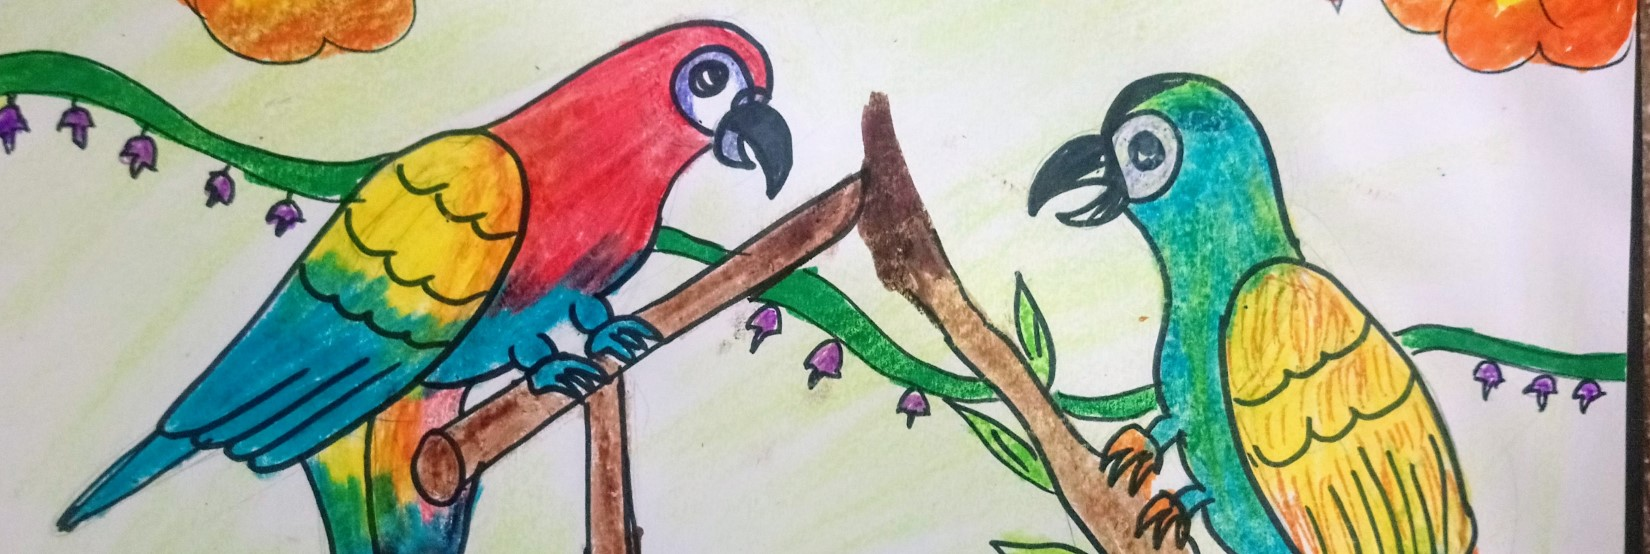 Kids Art Class Tropical Bird Drawing William Jeanes Library